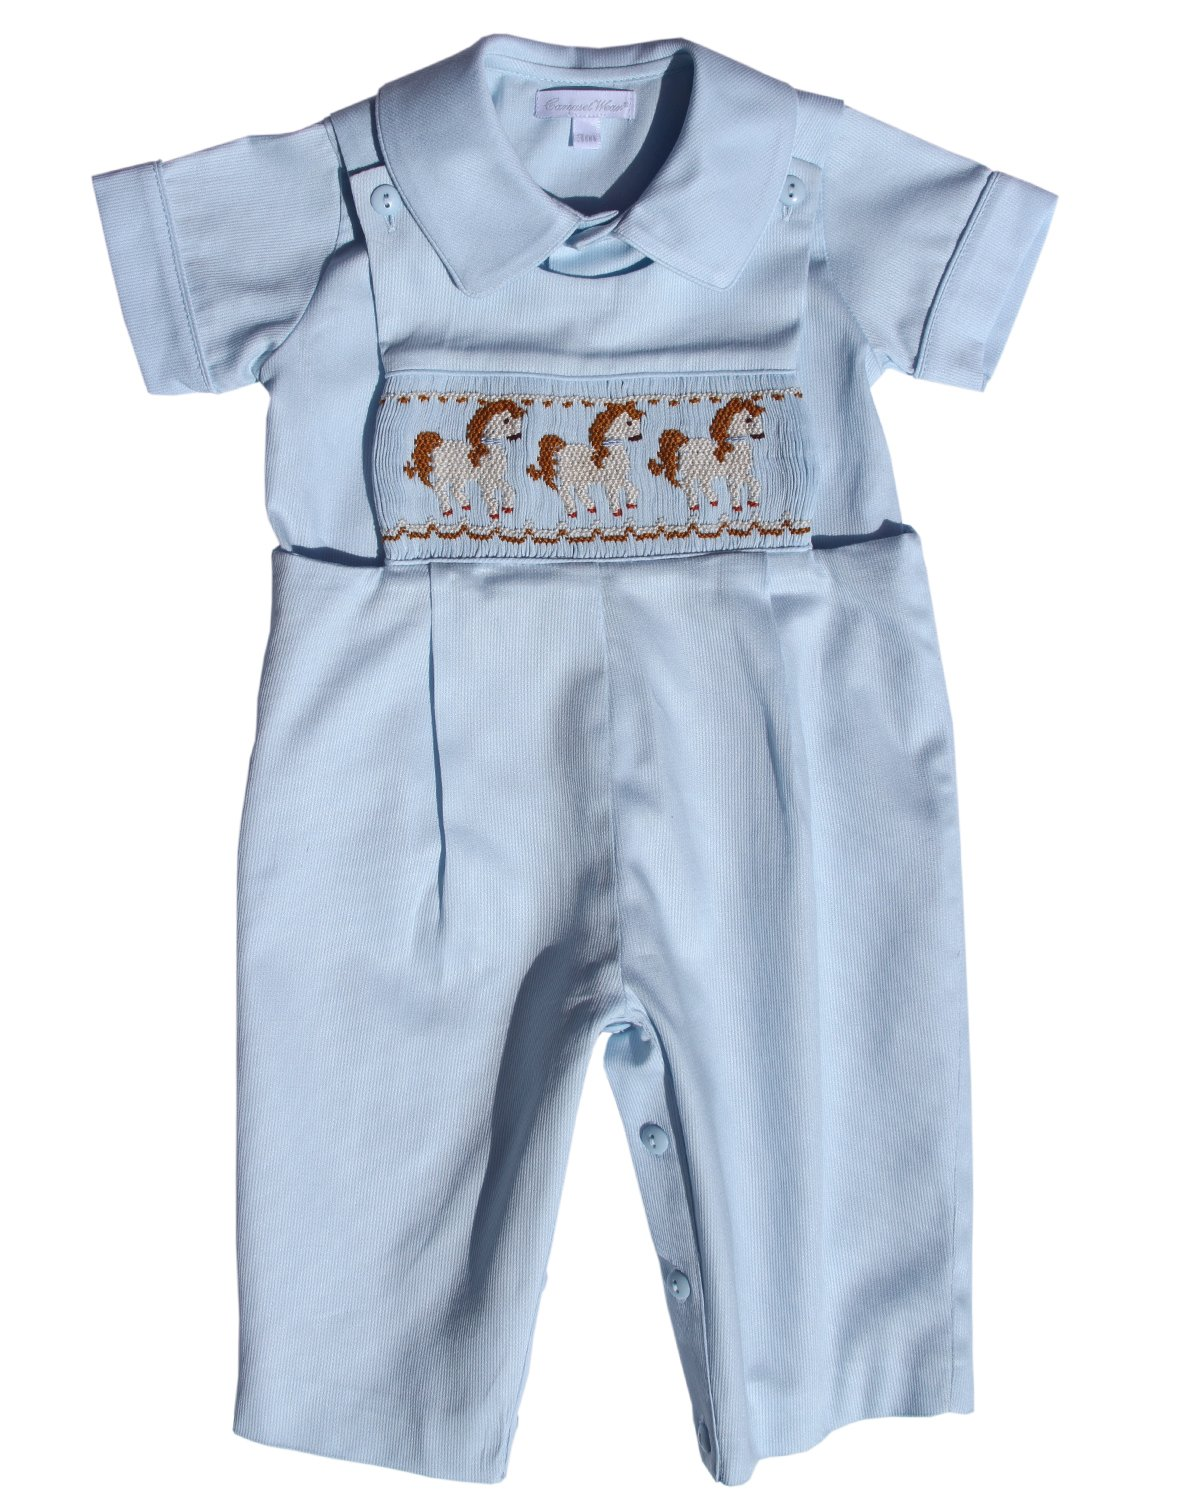 Carouselwear Boy Blue Longall Overalls with Smocked Carousel Horses